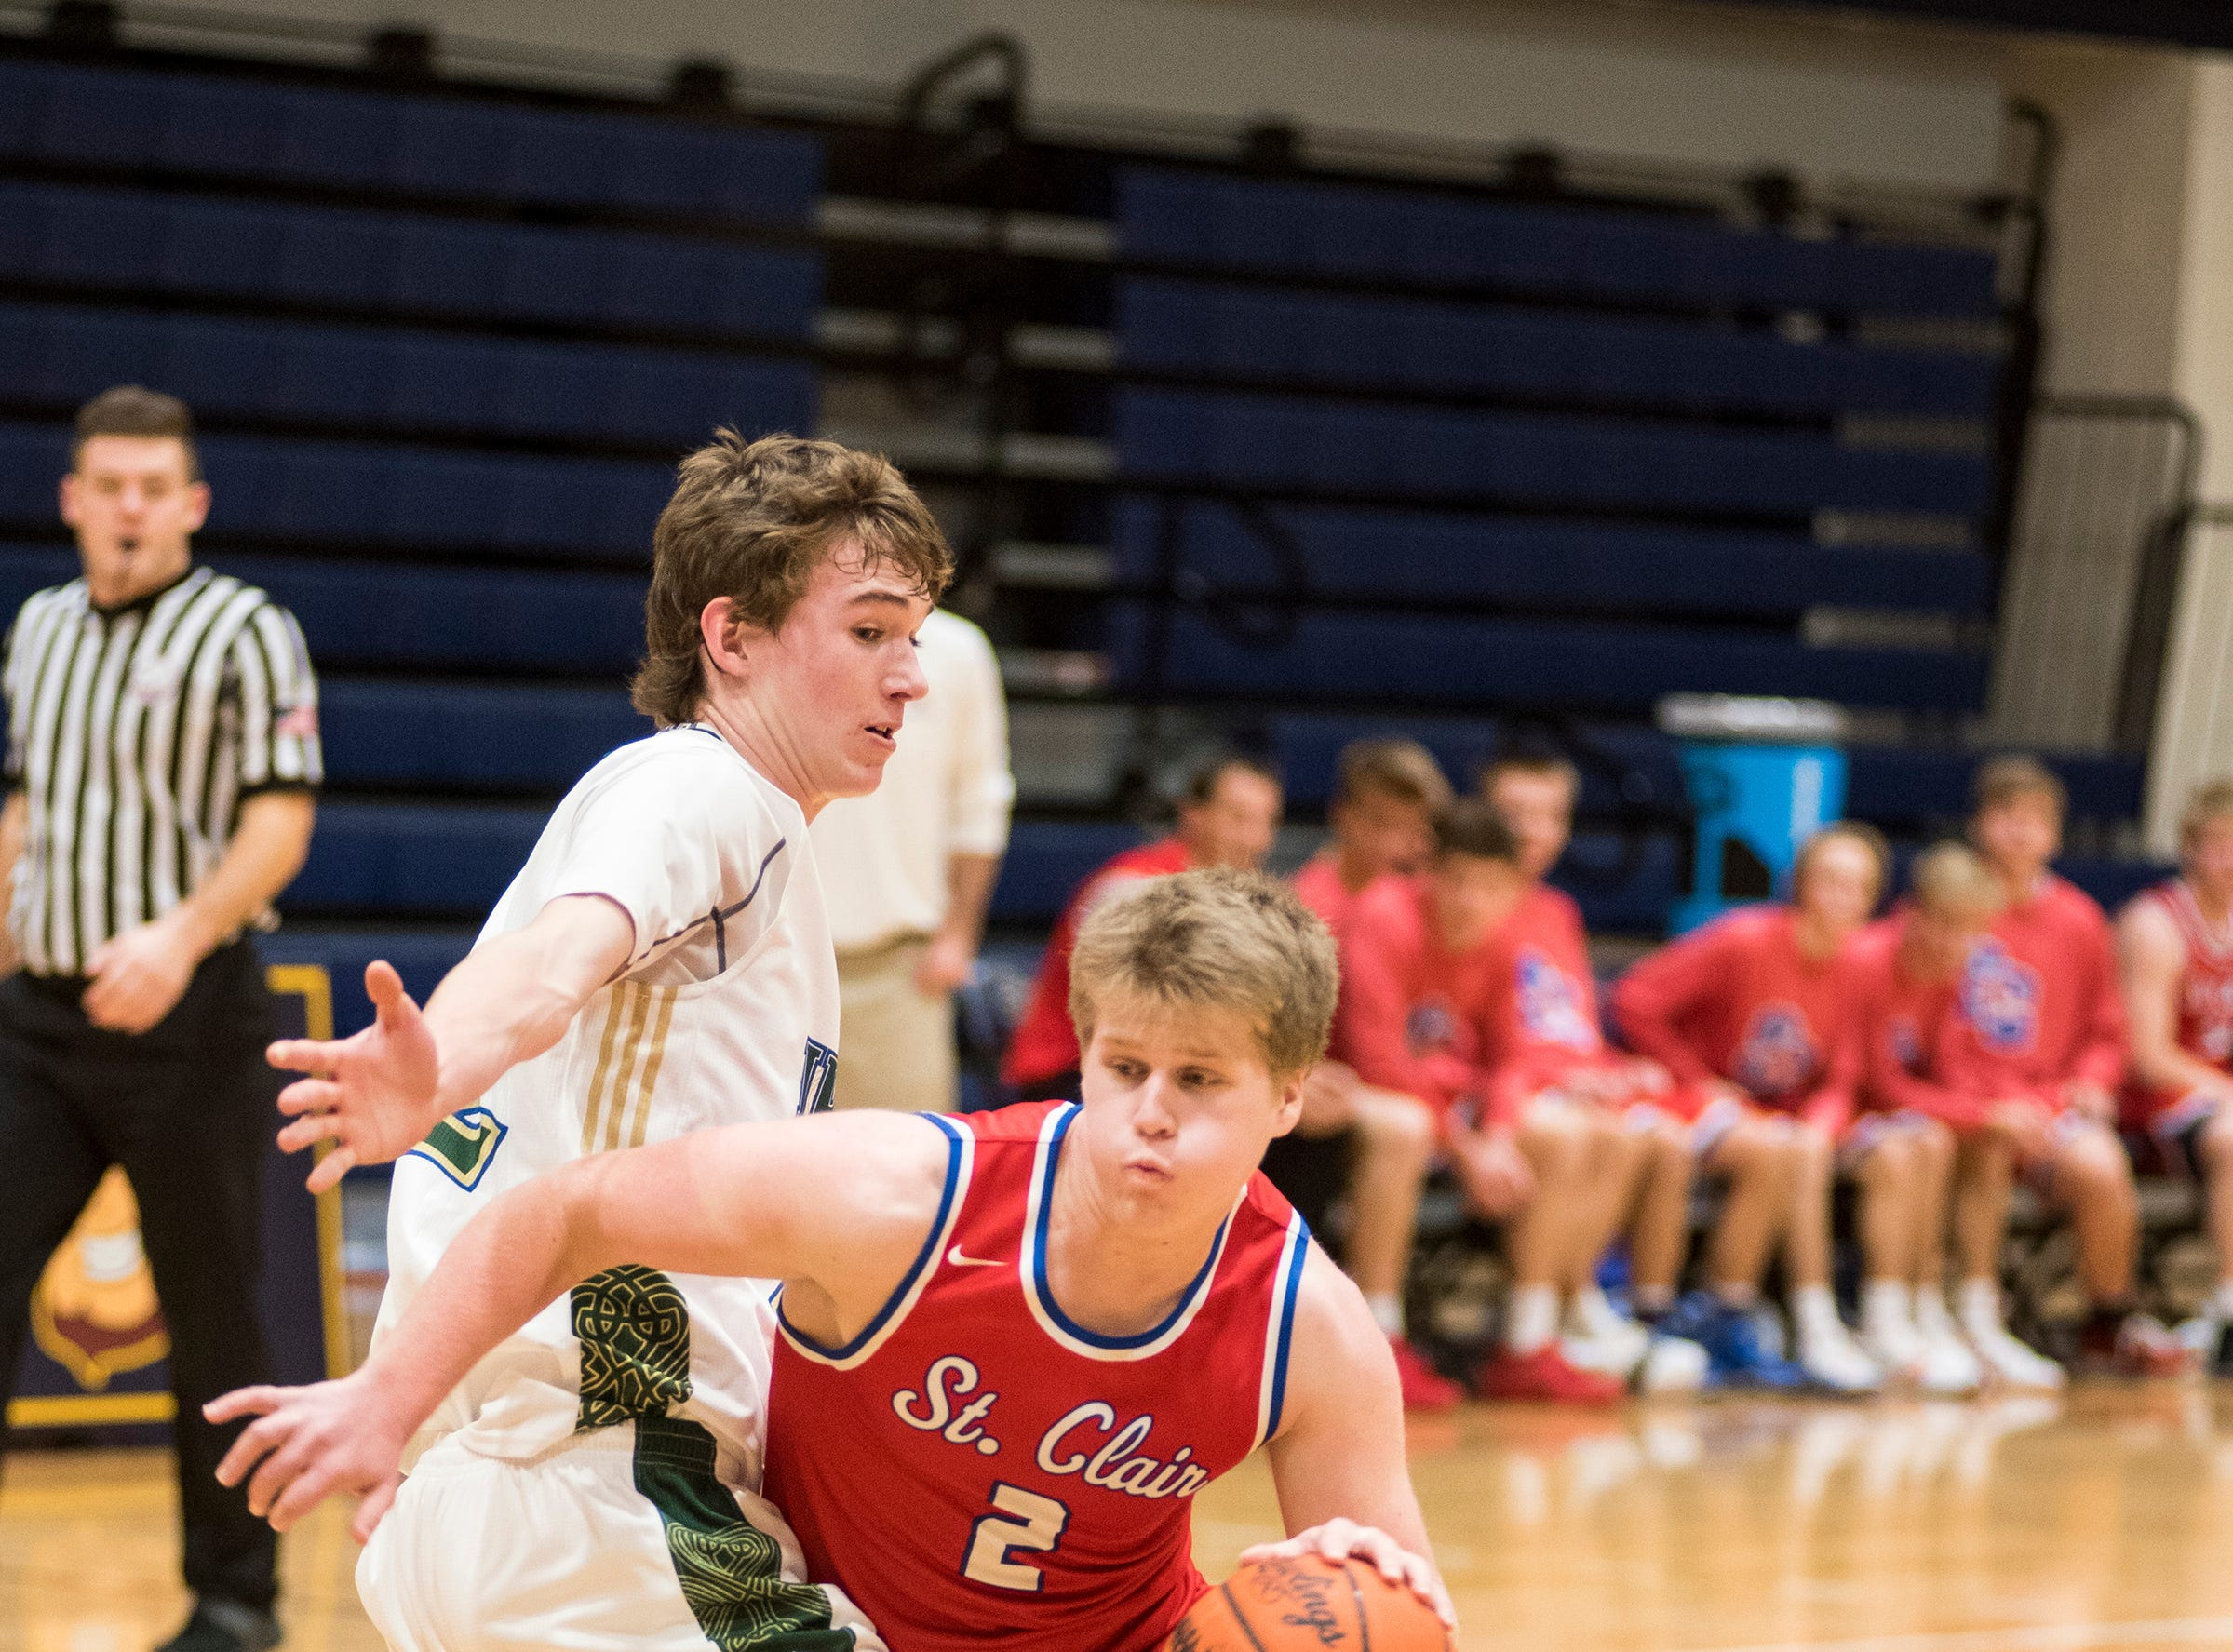 Sarnia St. Patrick's Catholic High School forward Spencer Baillie (left) defends against St. Clair High SChool guard Garrison Dombrowski during their SC4 Holiday Basketball Showcase game Friday, Dec. 28, 2018 at the SC4 Fieldhouse.